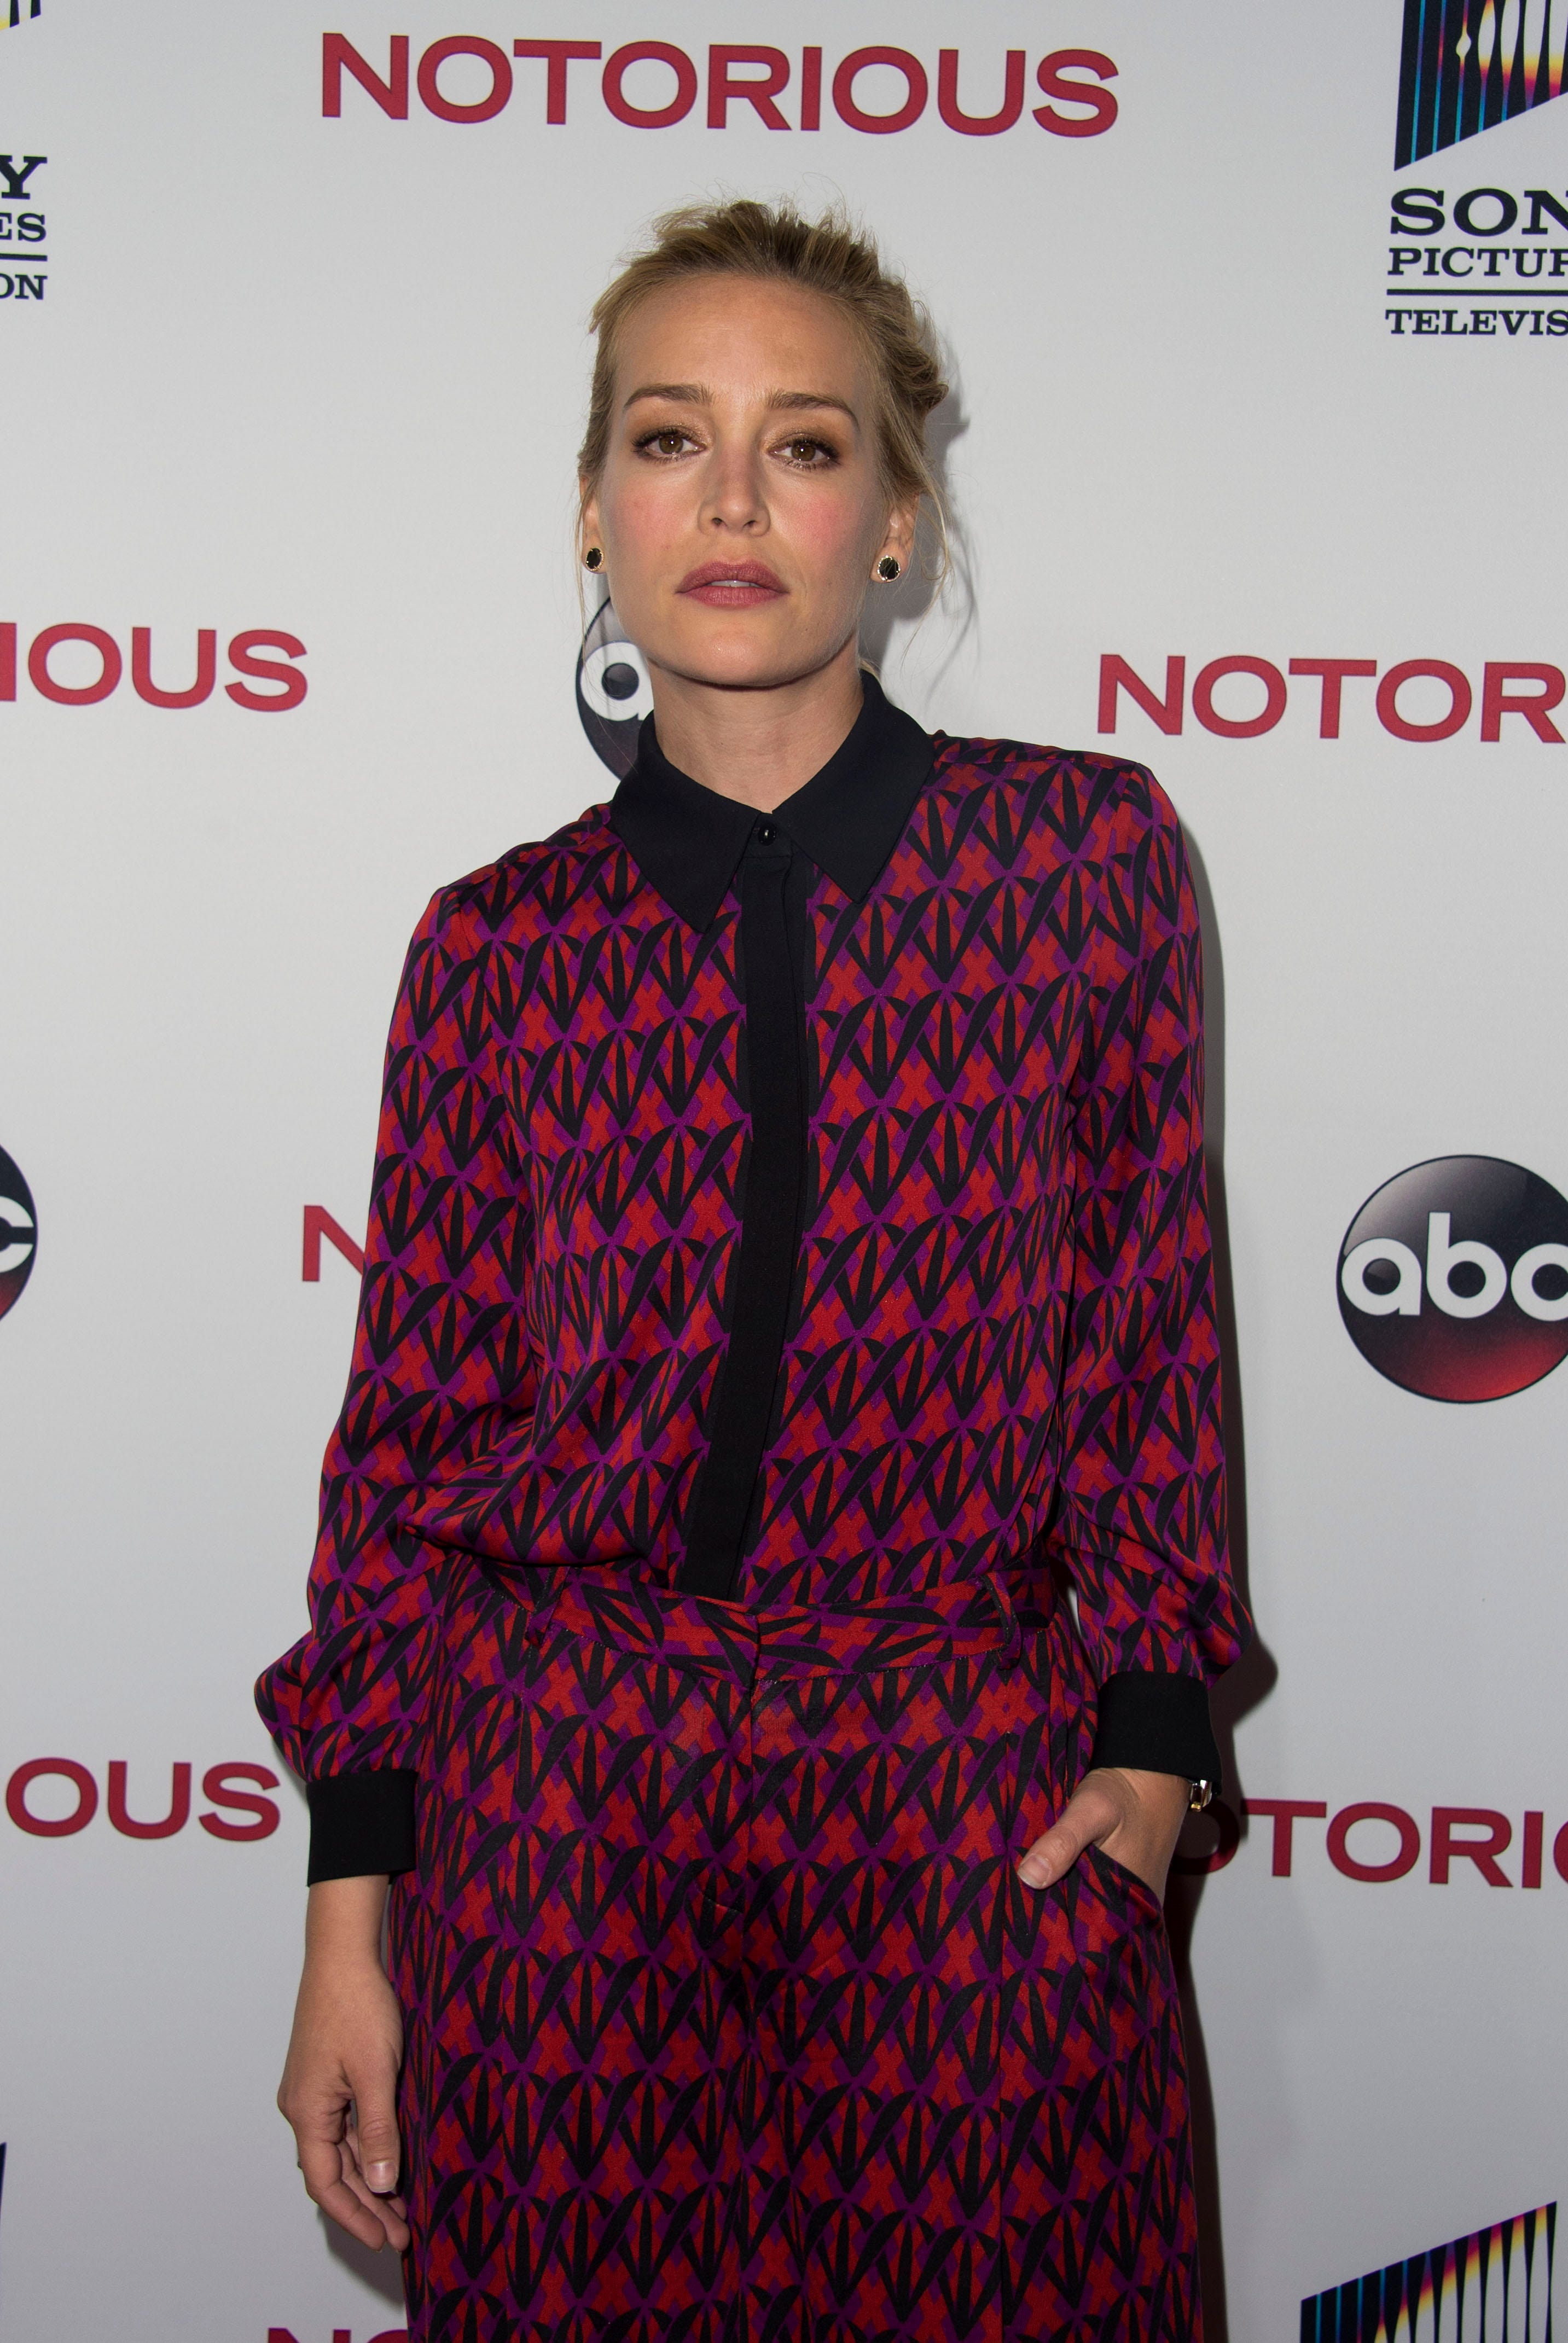 'Covert Affairs' actress Piper Perabo arrested for protesting Kavanaugh's court confirmation